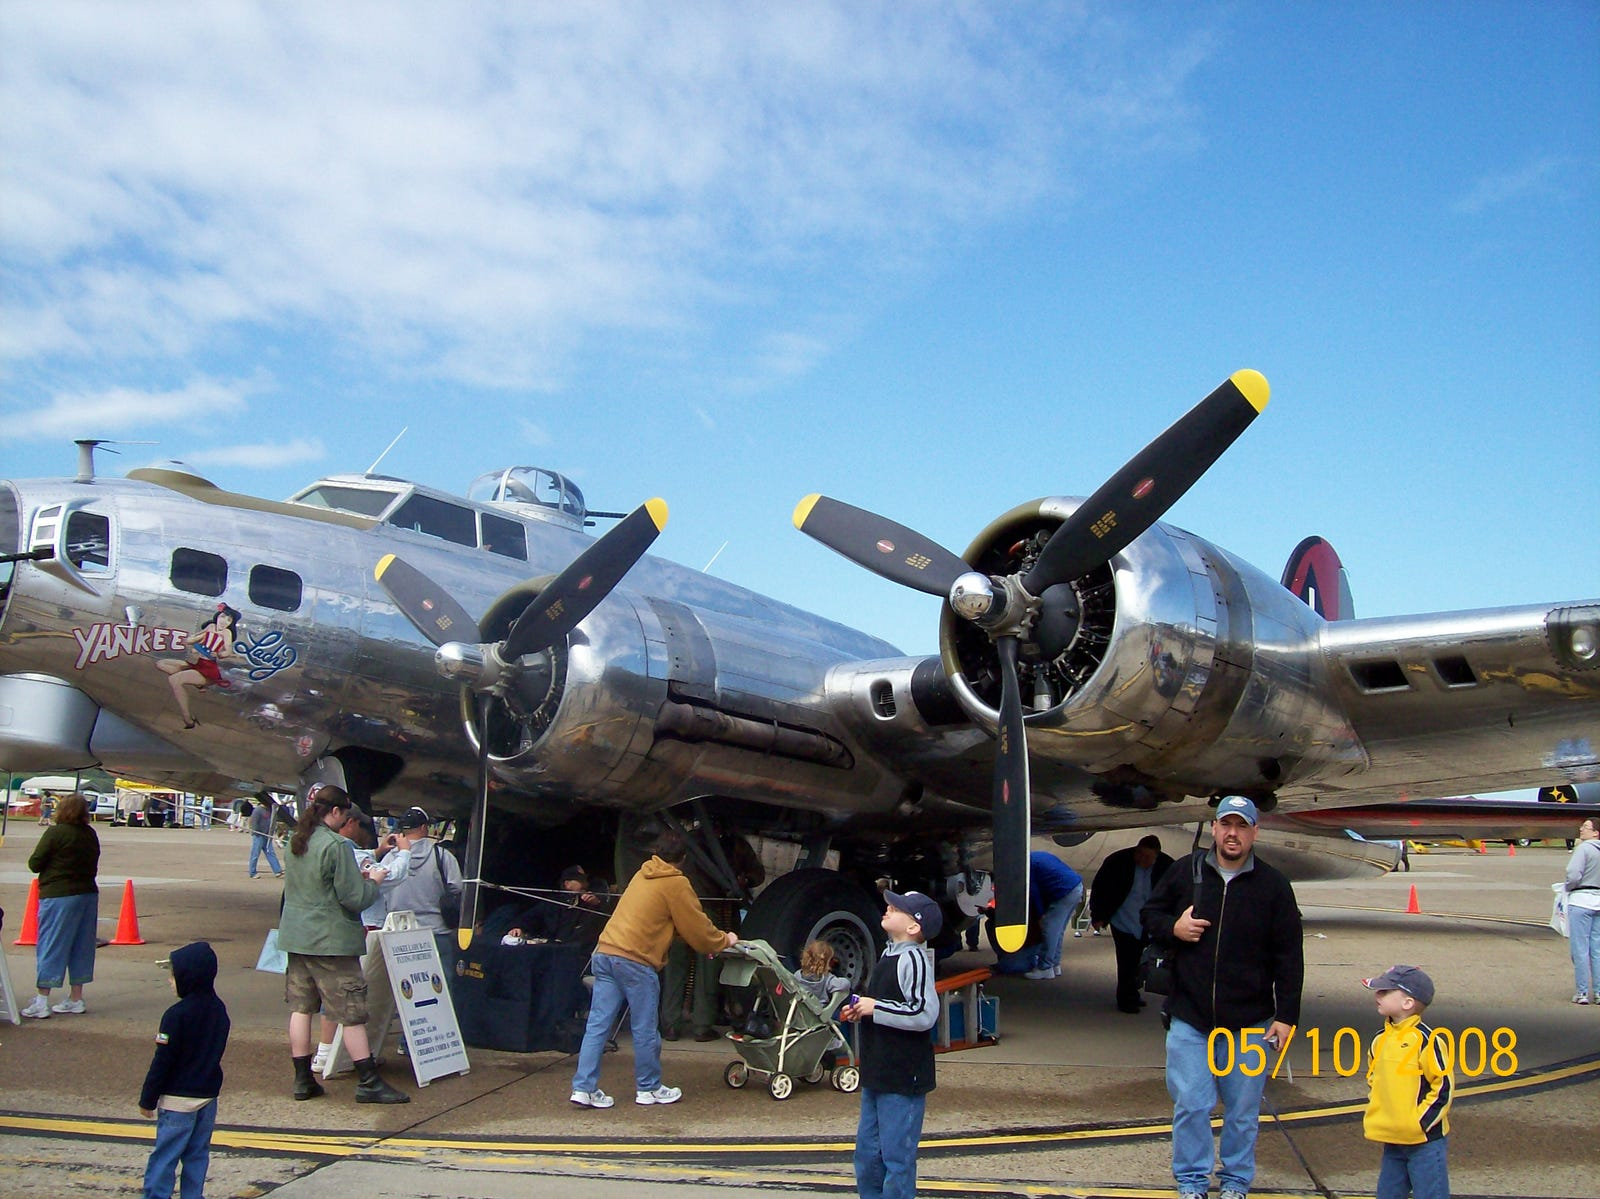 Yankee Lady is a B-17G–110–VE, completed by Lockheed's Vega division in July of '45